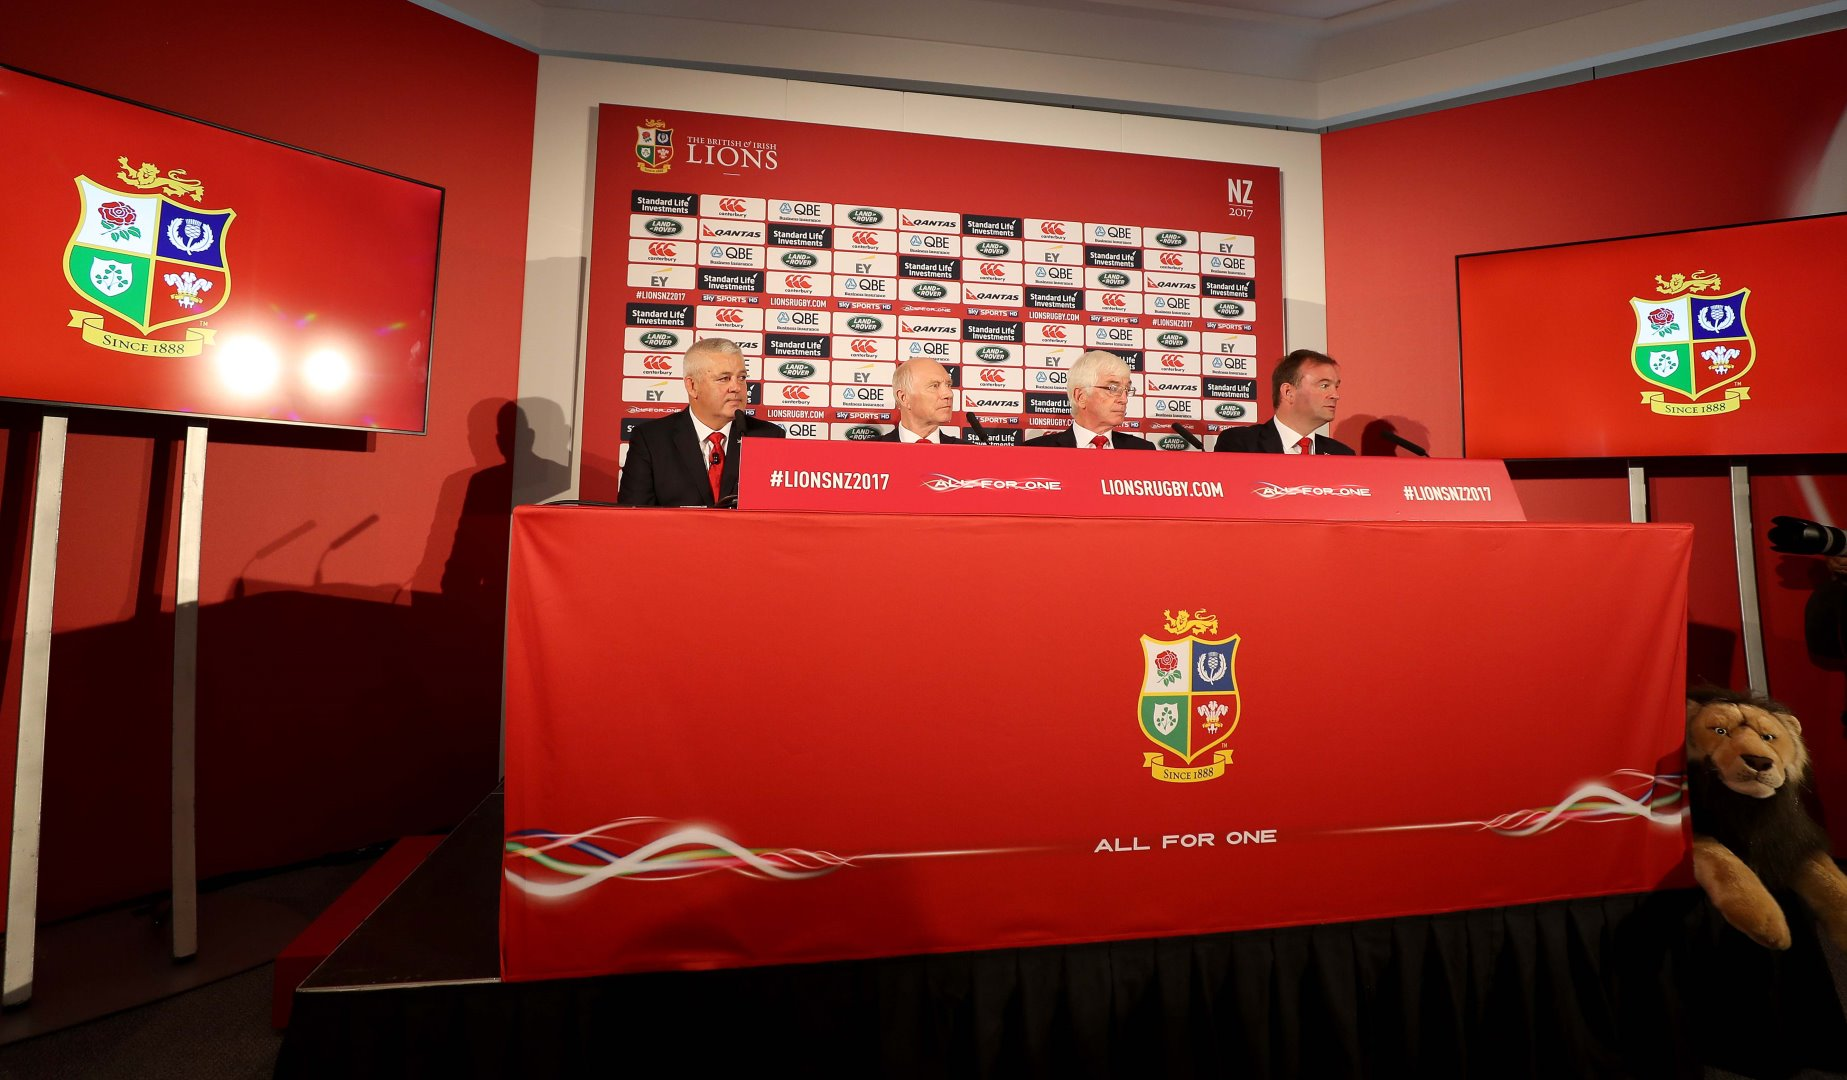 Lions appoint Heads of Analysis, Medical and Fitness